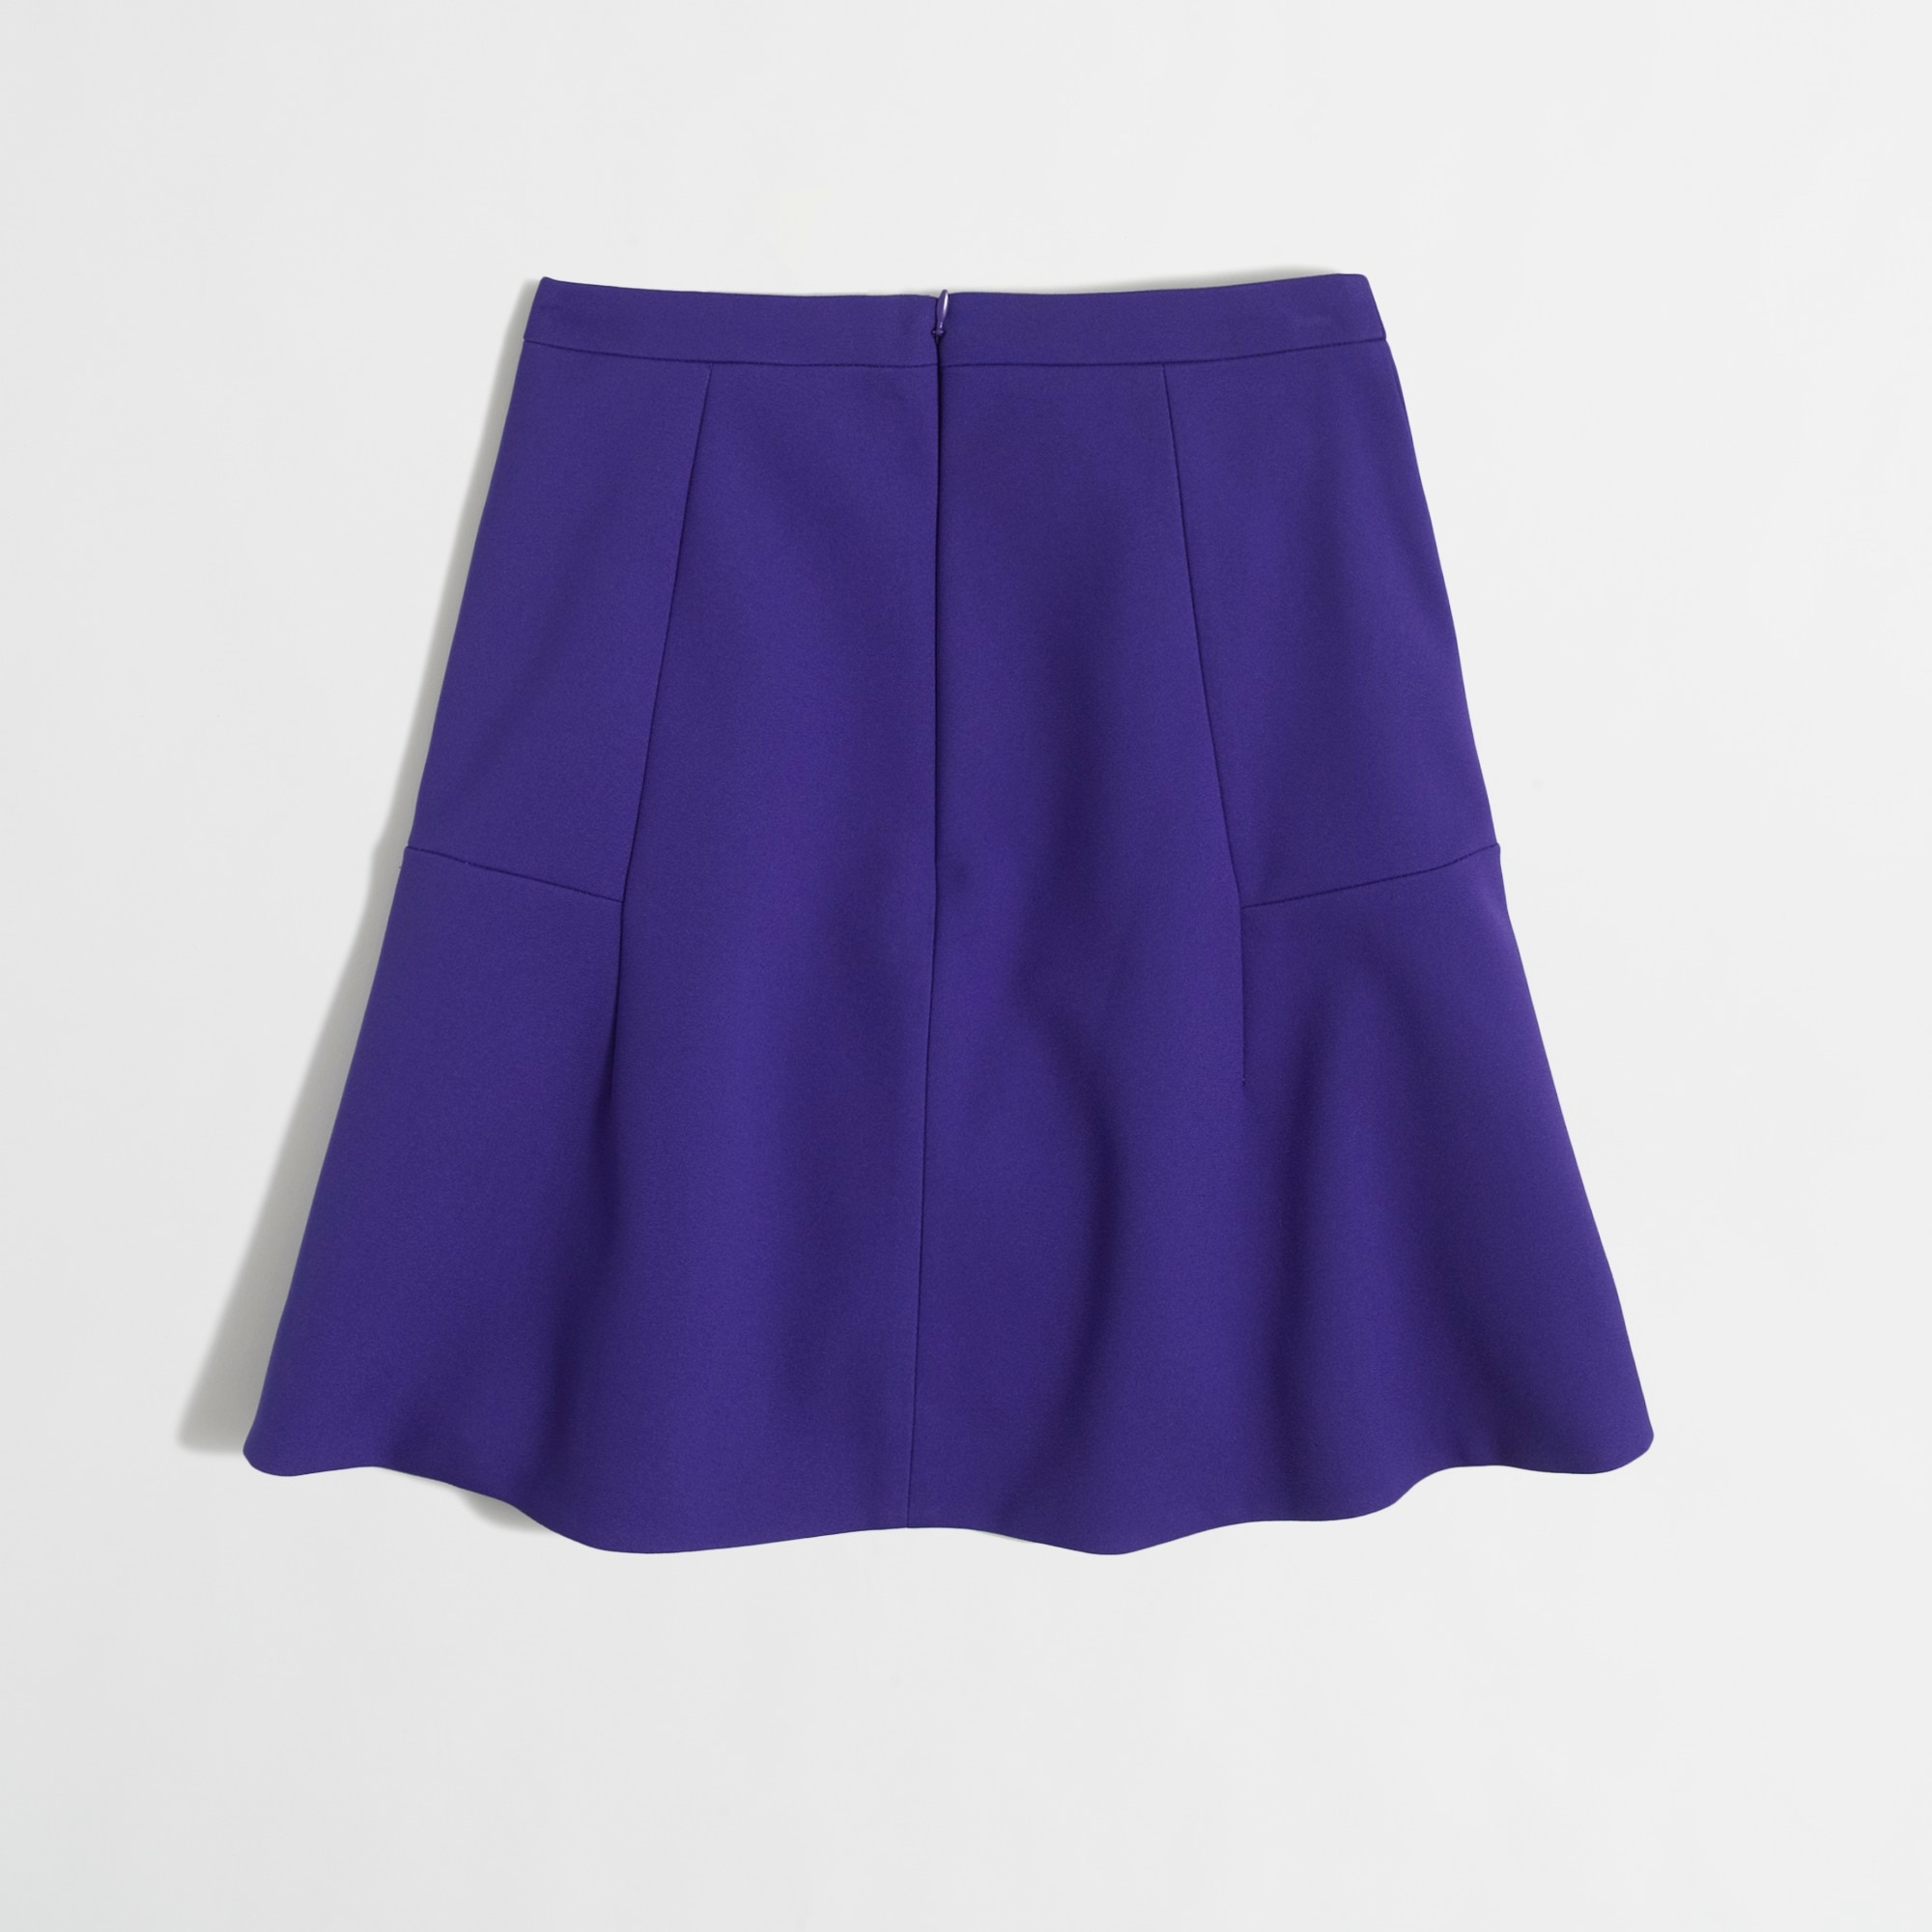 Image 2 for Flared skirt